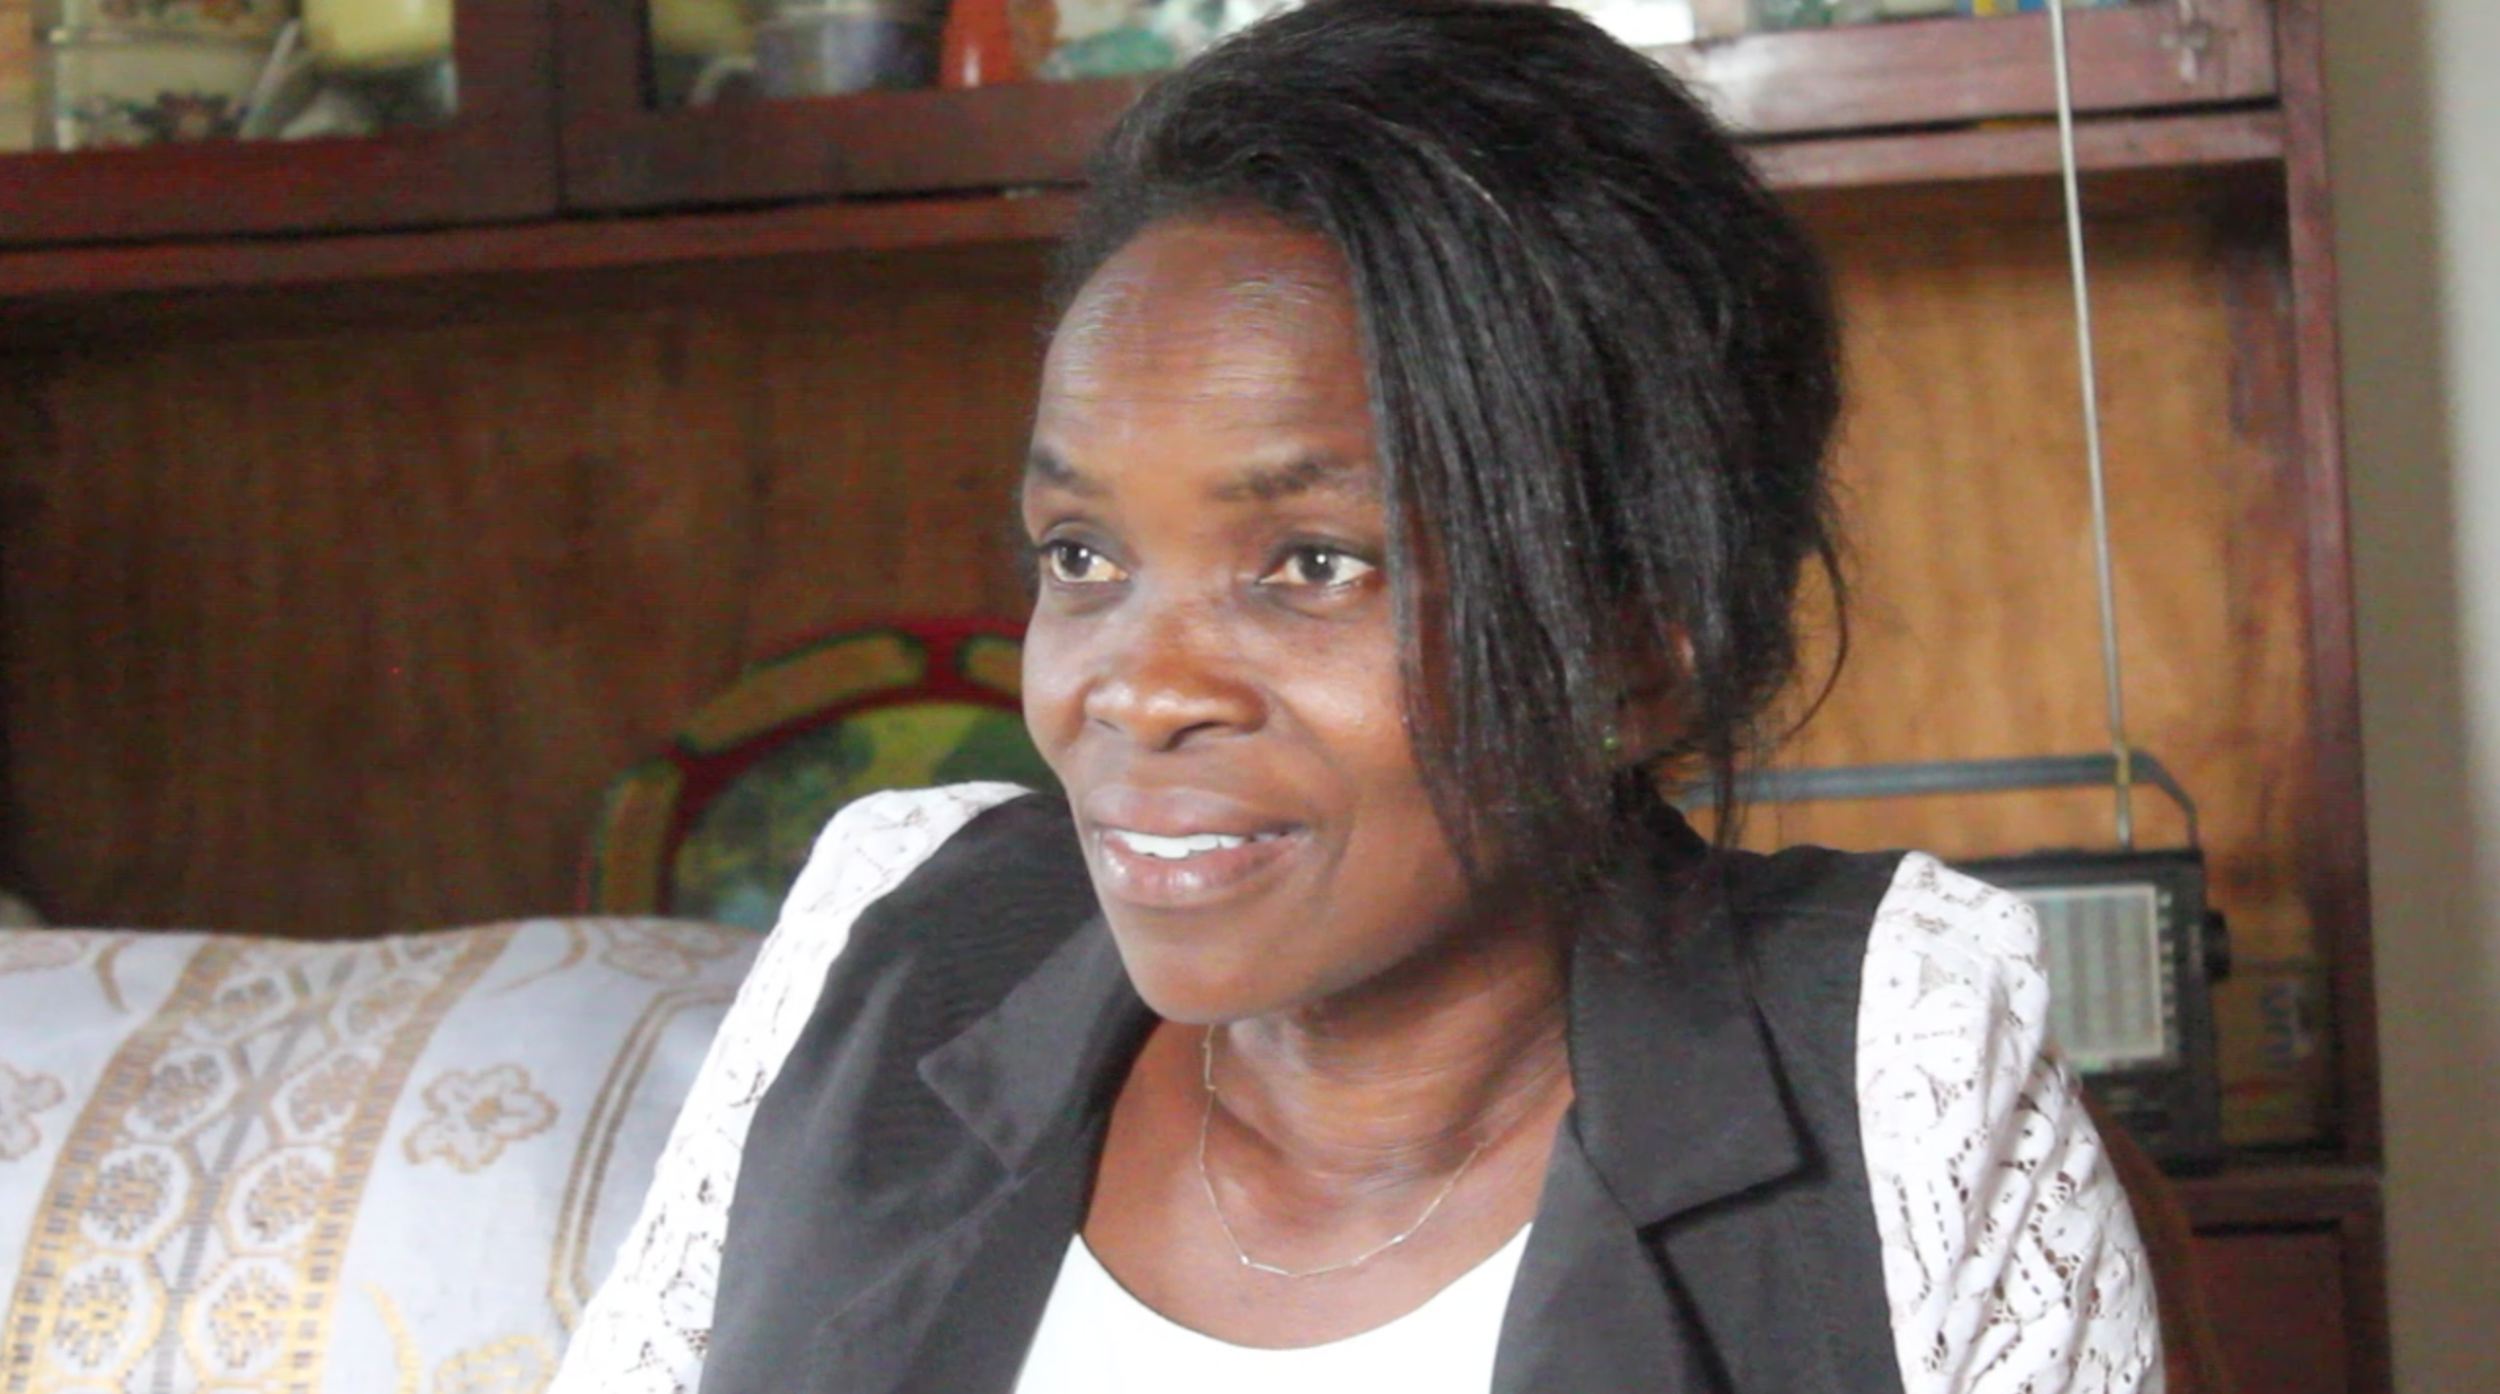 Ms. Changuya spoke with us at her home about her path to teaching, among many other topics.